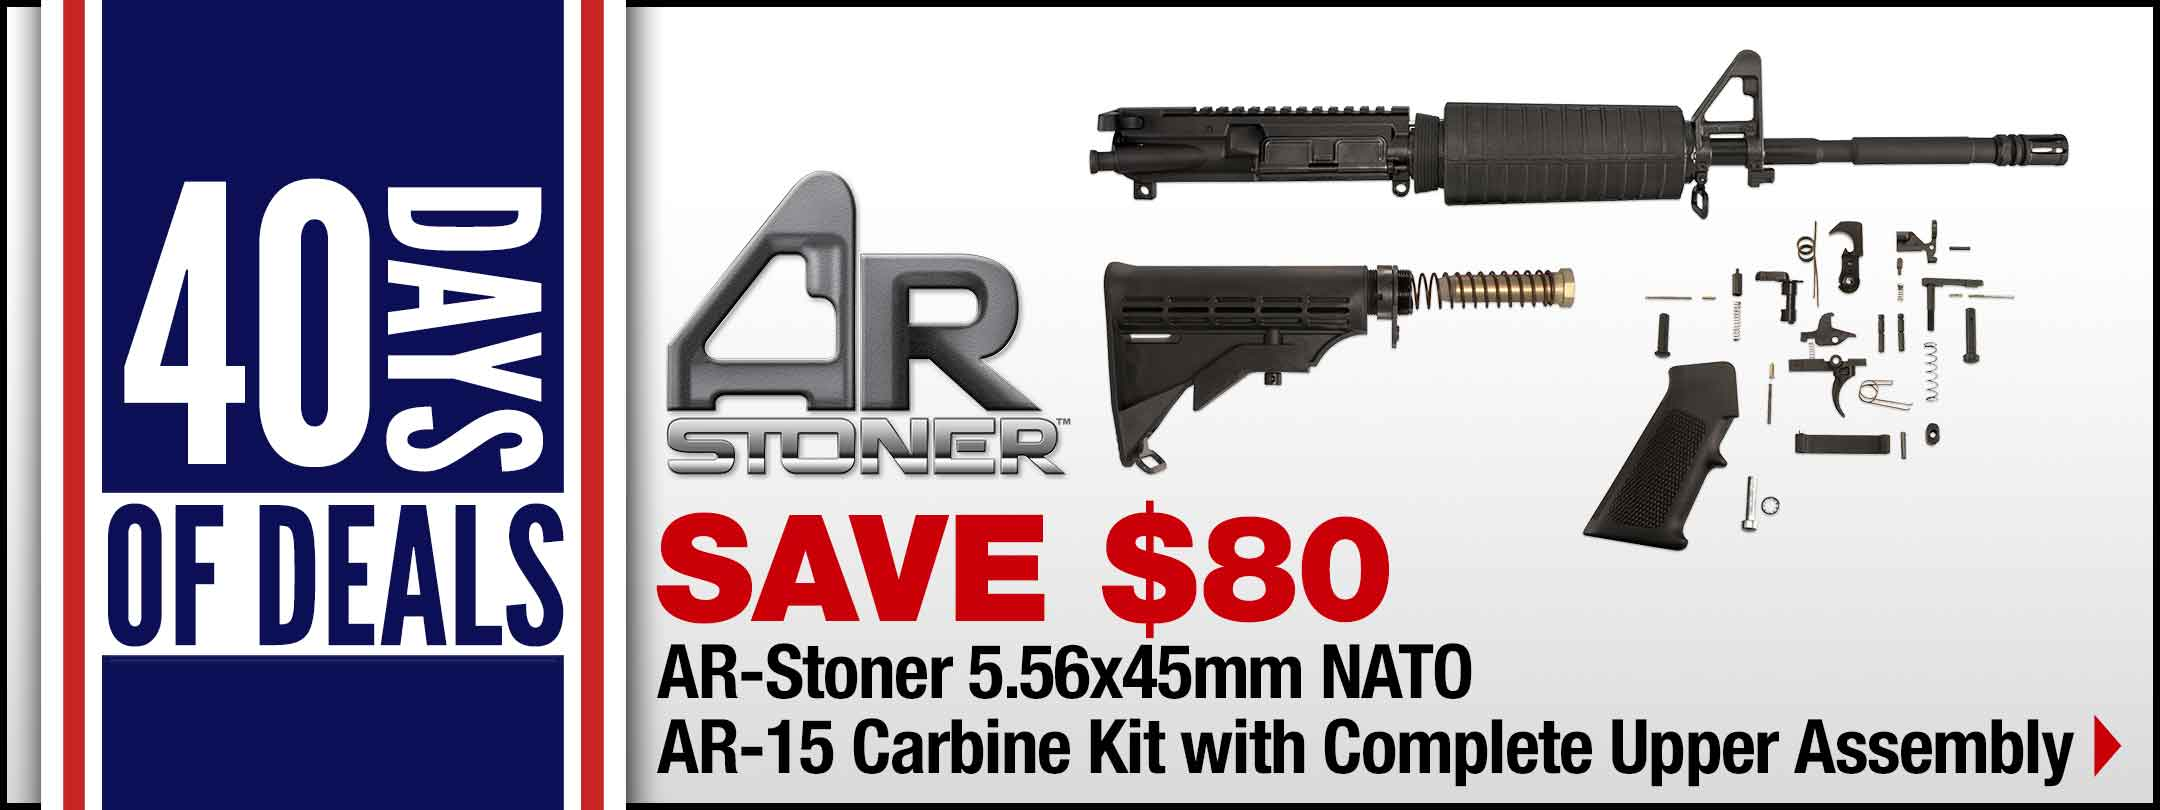 AR-Stoner 5.56x45mm NATO Carbine Kit with Complete Upper Assembly